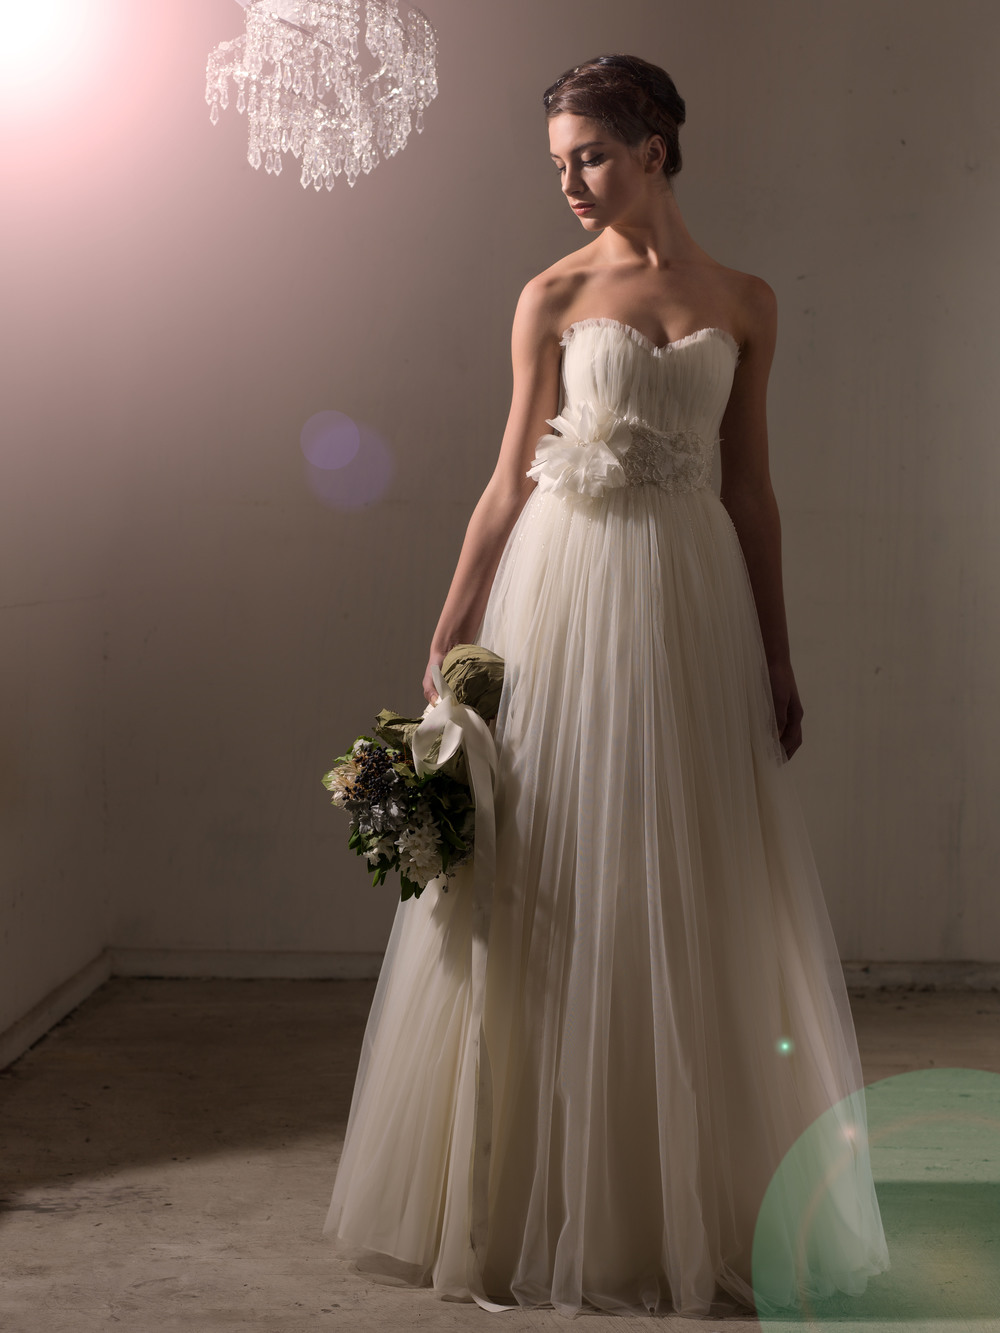 Sarah Janks Wedding Gown - Fall 2014 Collection {Davinia} : spun of fine tulle and decadent silk gazaar, gathered ball gown skirt, strung with dainty beads